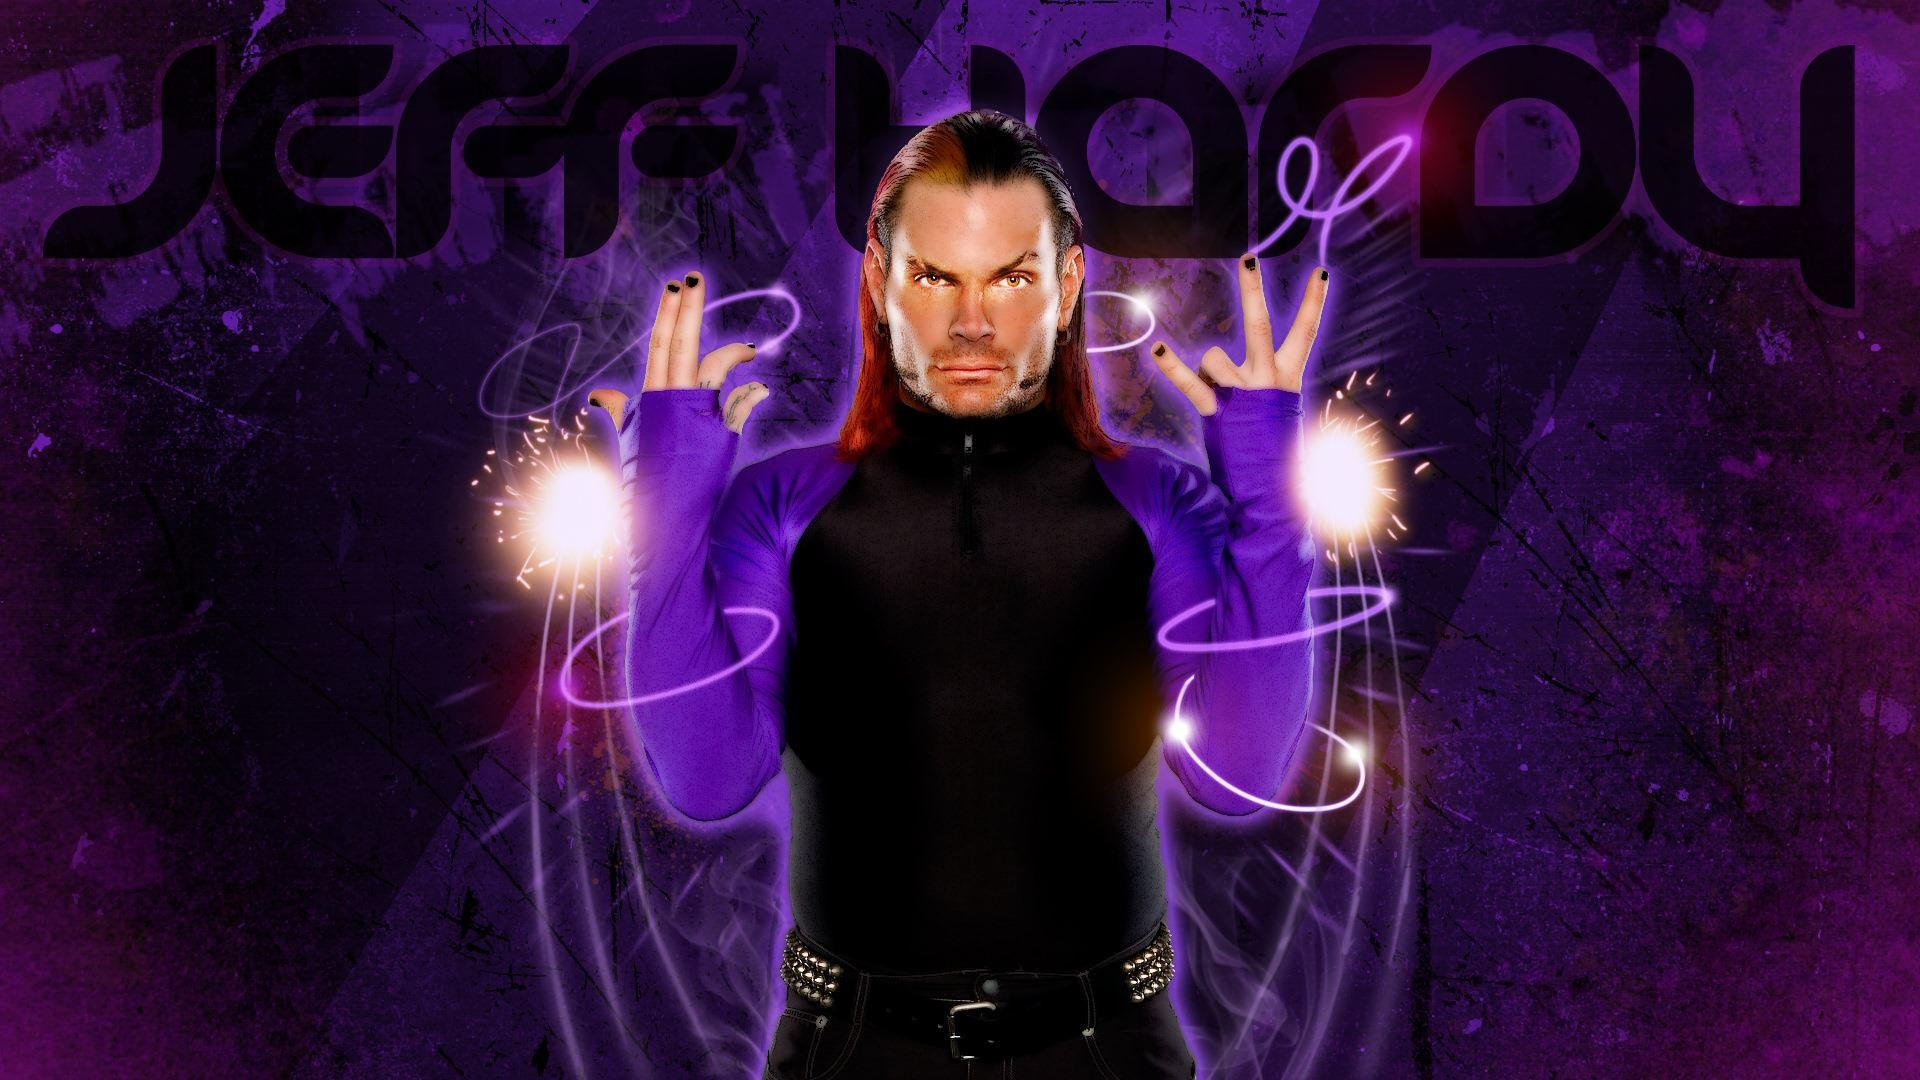 wwe superstar jeff hardy hd 3d wallpaper desktop